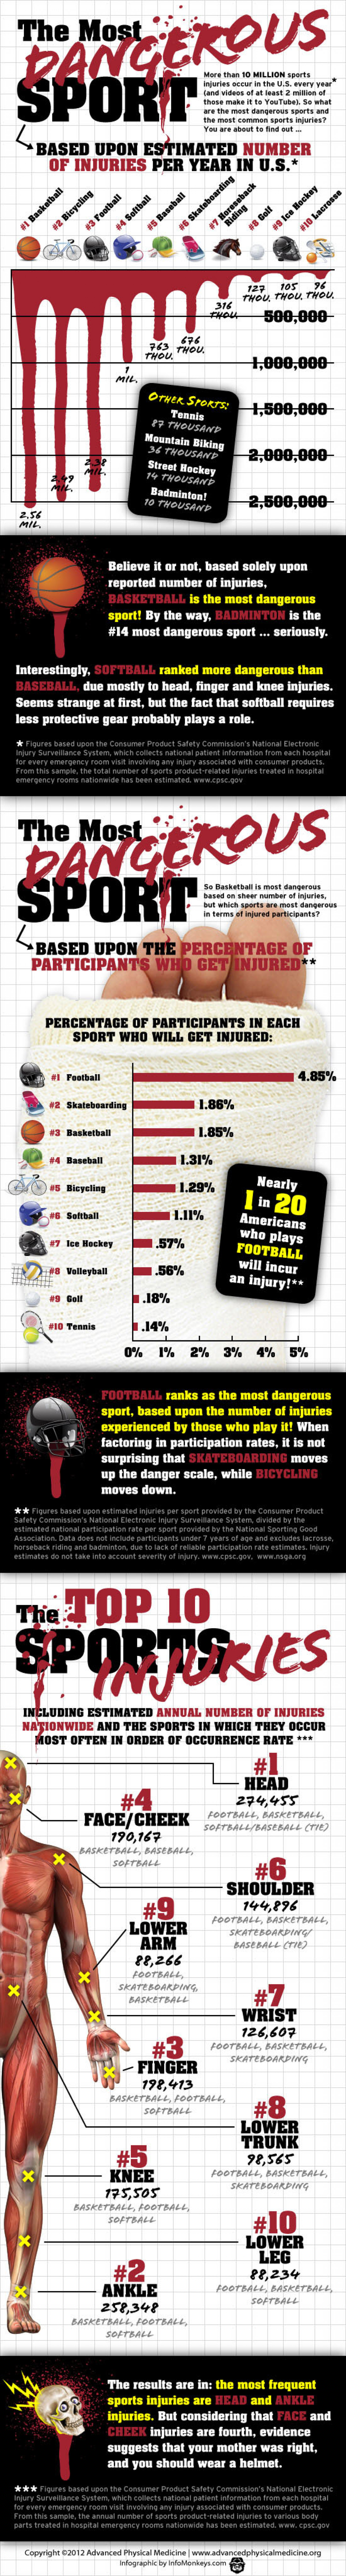 The Most Dangerous Sport Infographic